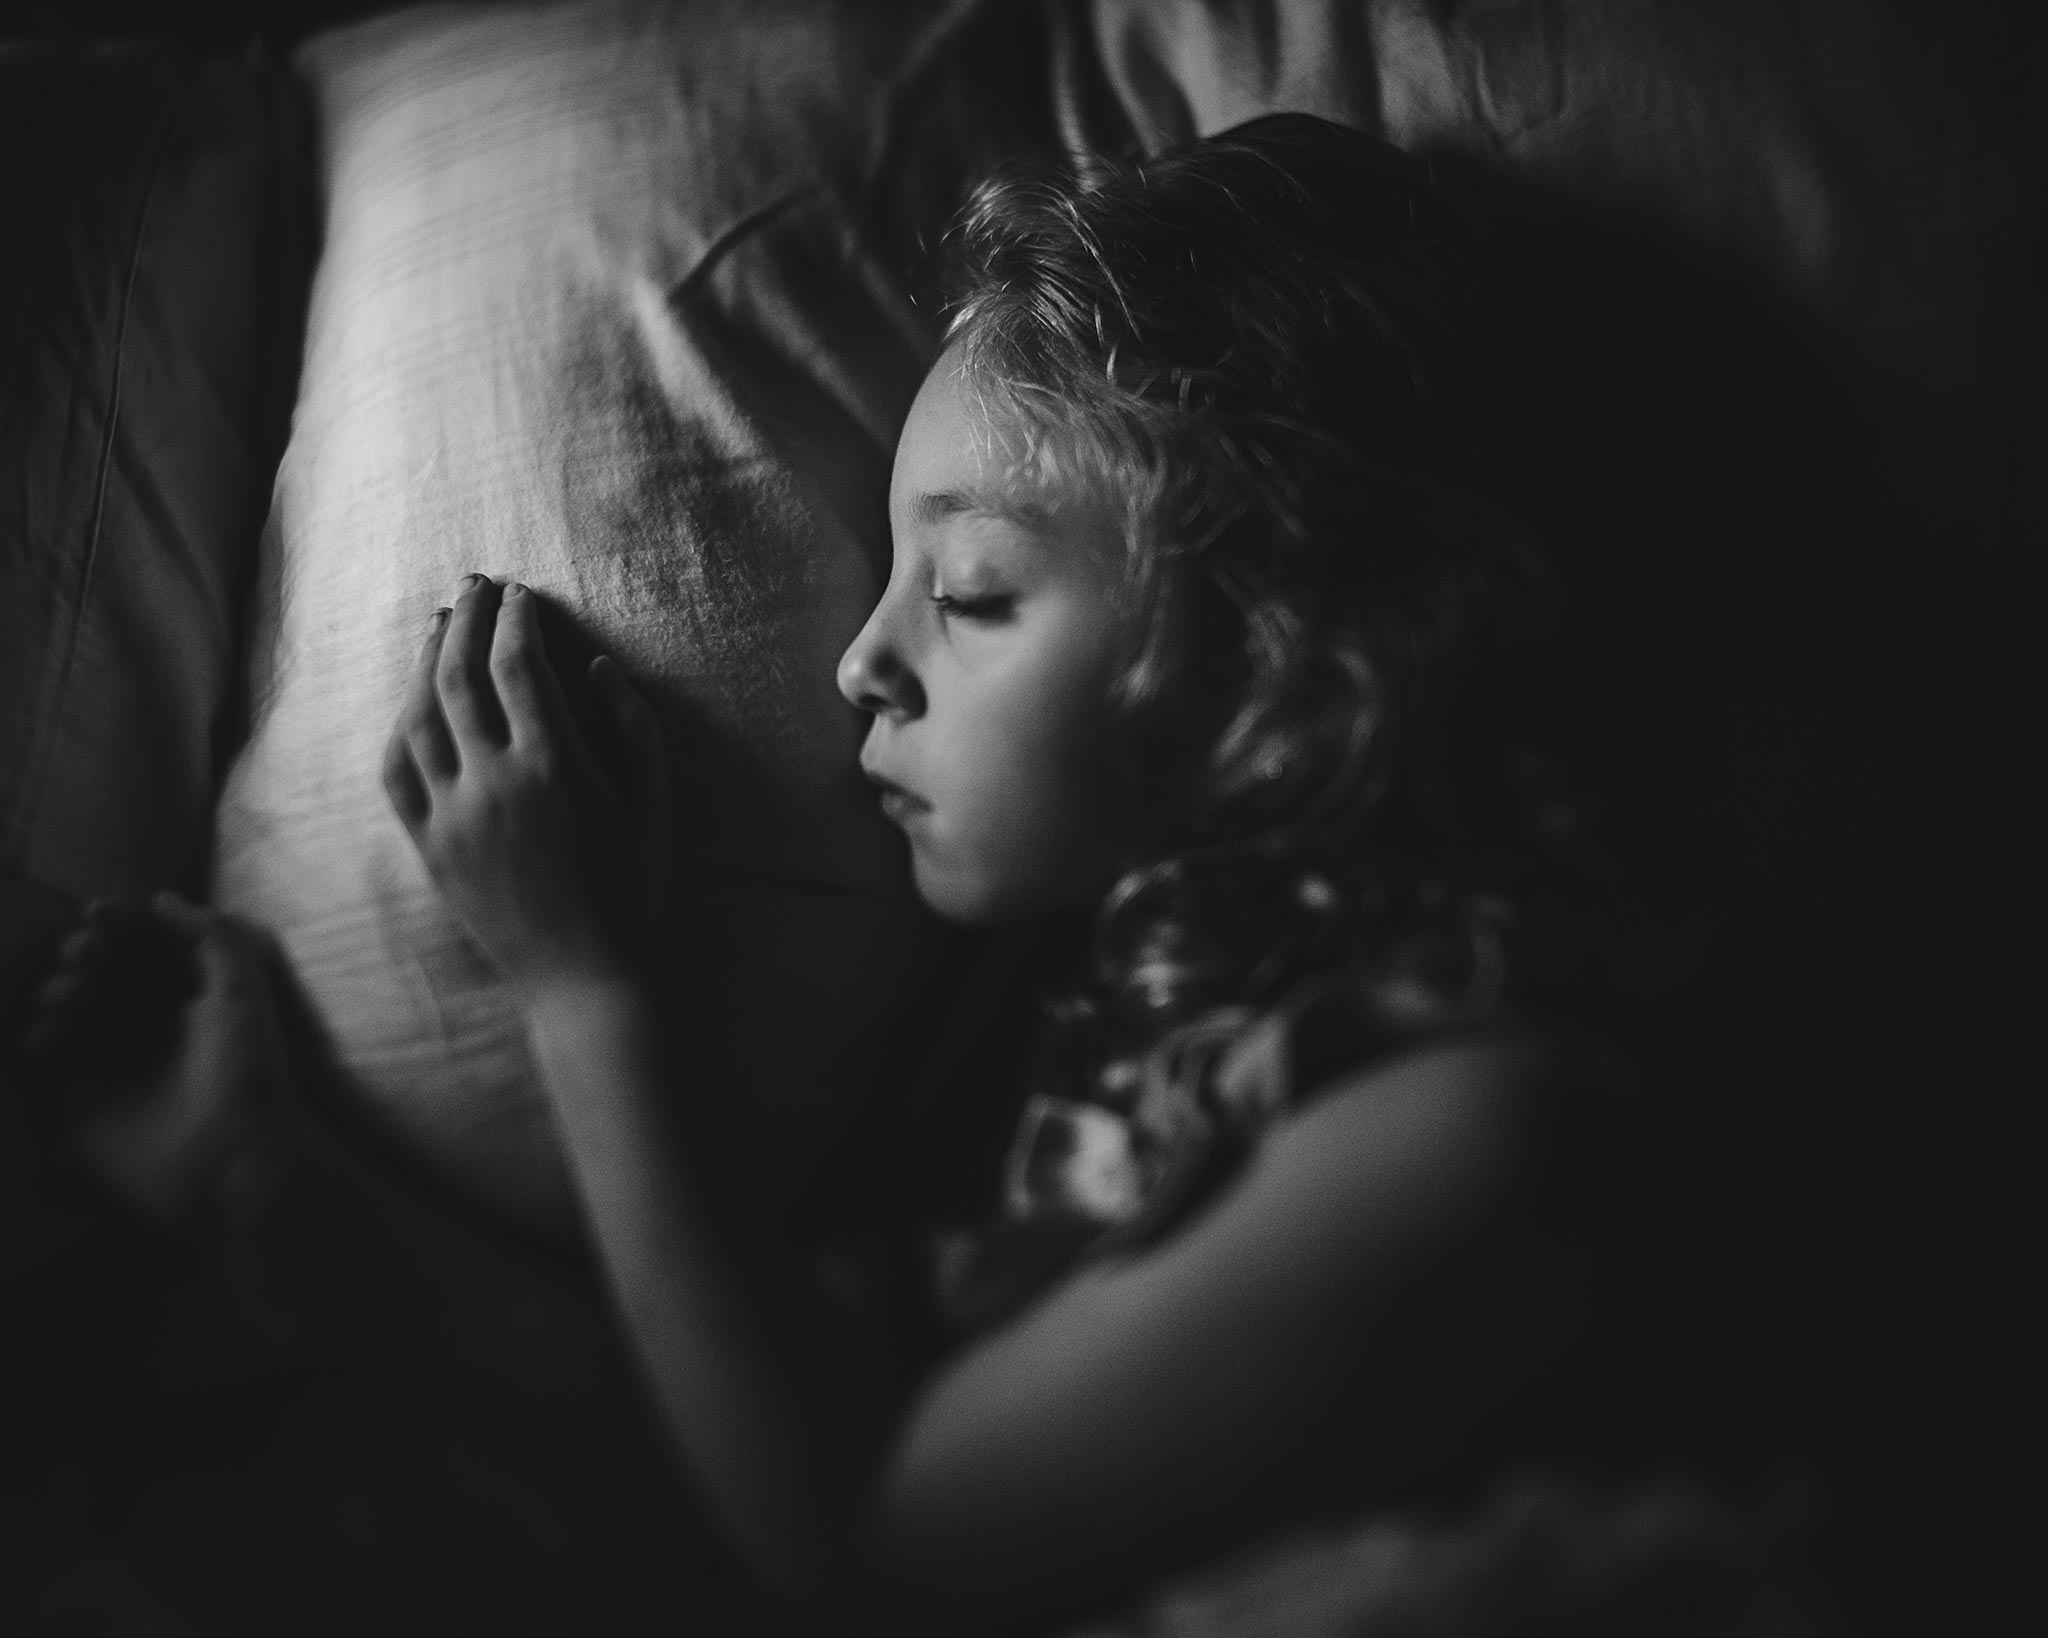 9:24pm… Sweetly dreaming 24mm freelensed, ISO 2500, 1/320s